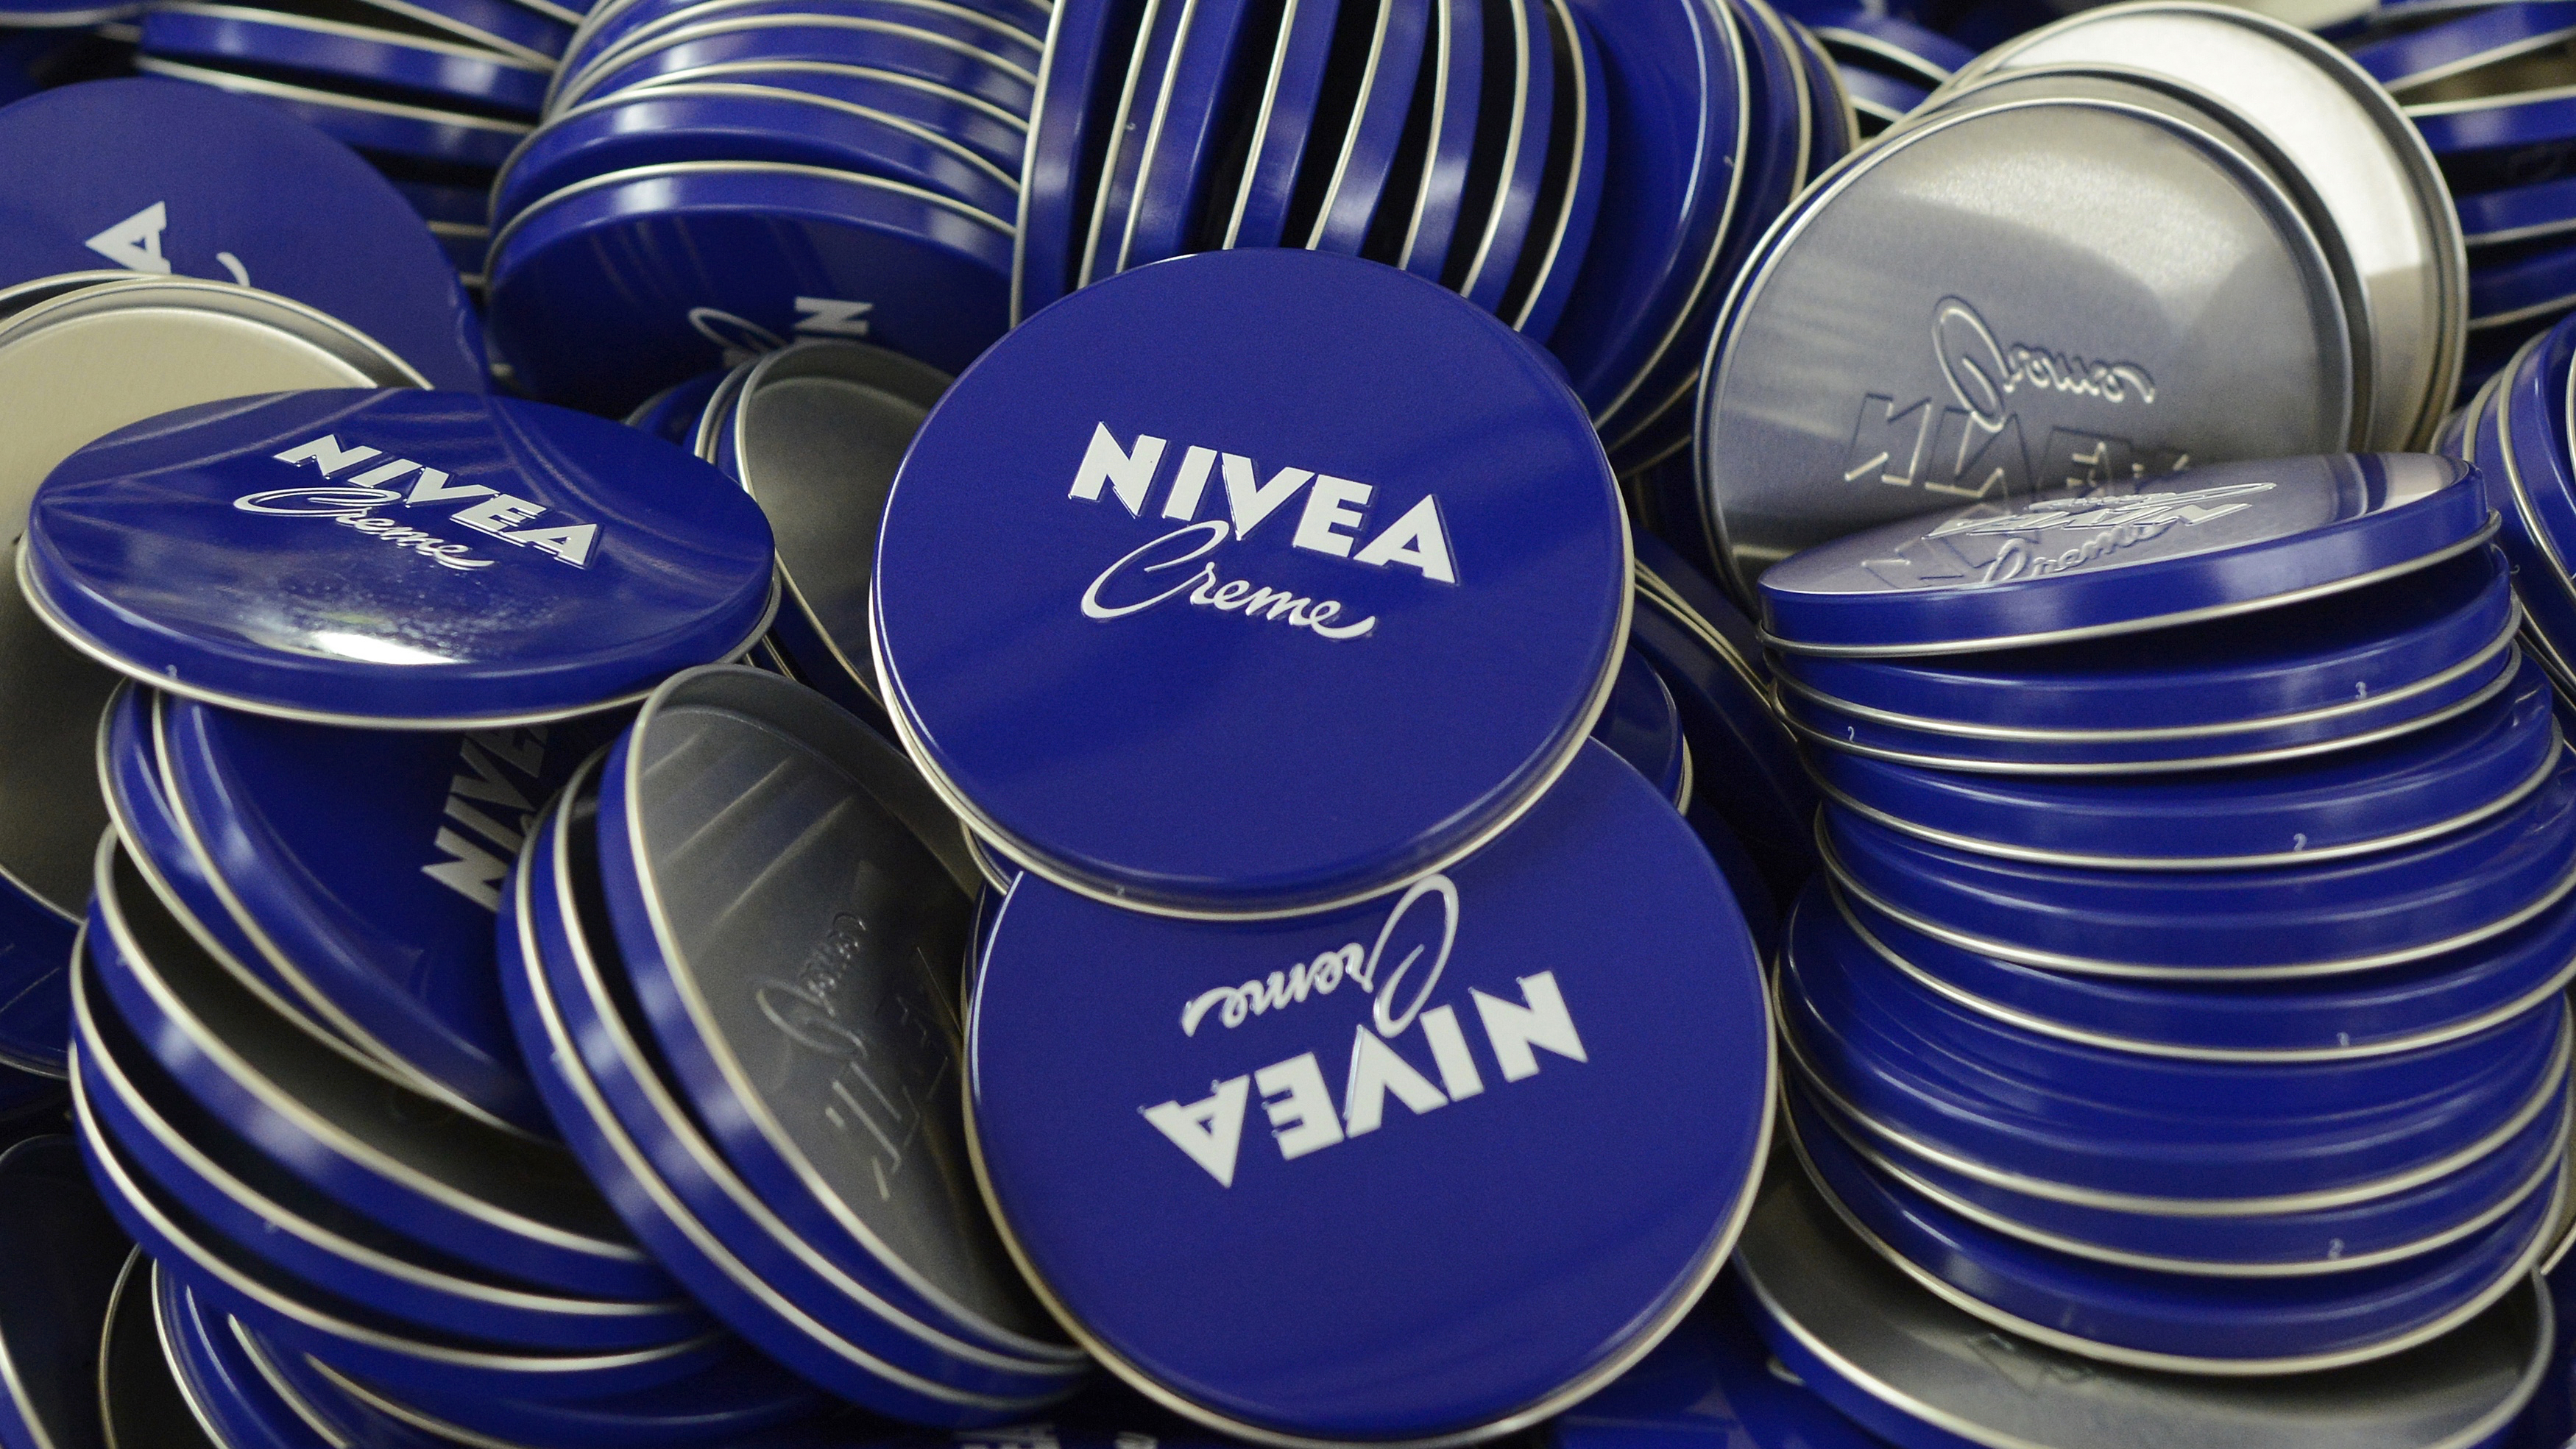 Cover plates of Nivea skin cream are pictured in a production line of German company Beiersdorf AG in Hamburg, April 18, 2012. REUTERS/Fabian Bimmer (GERMANY - Tags: HEALTH) - BM2E84I14XV01